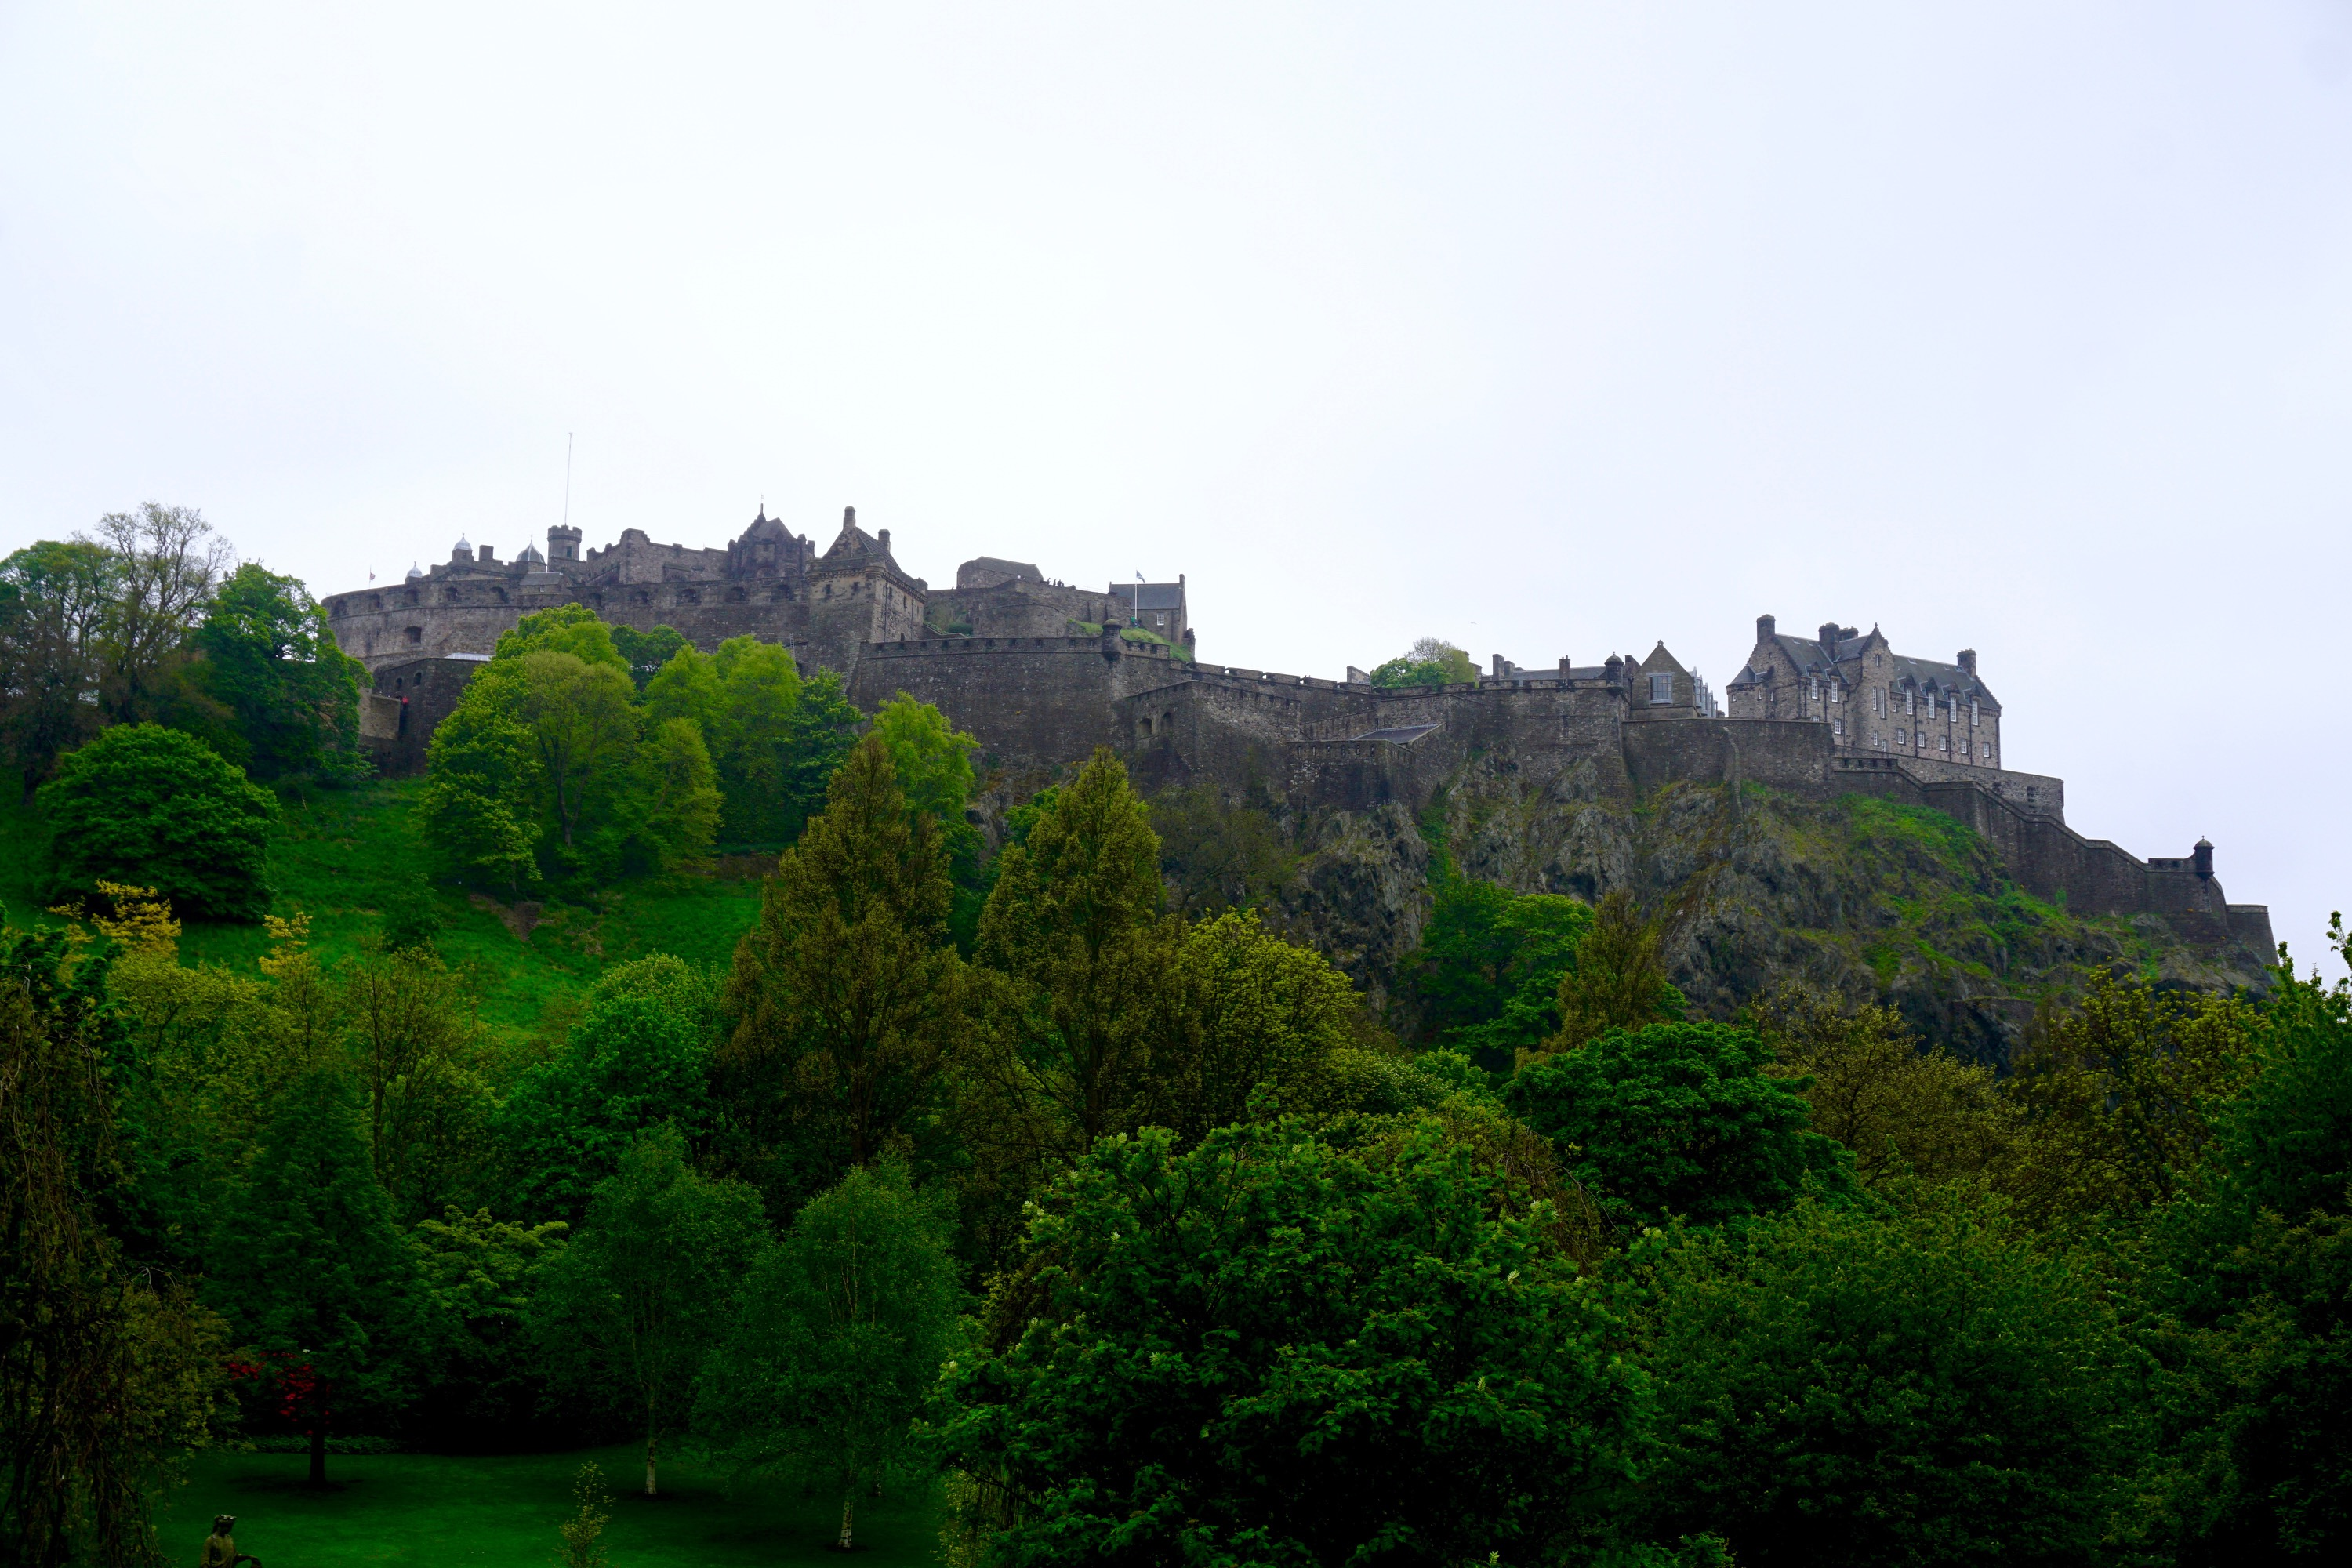 Edinburgh Castle, in the heart of the city